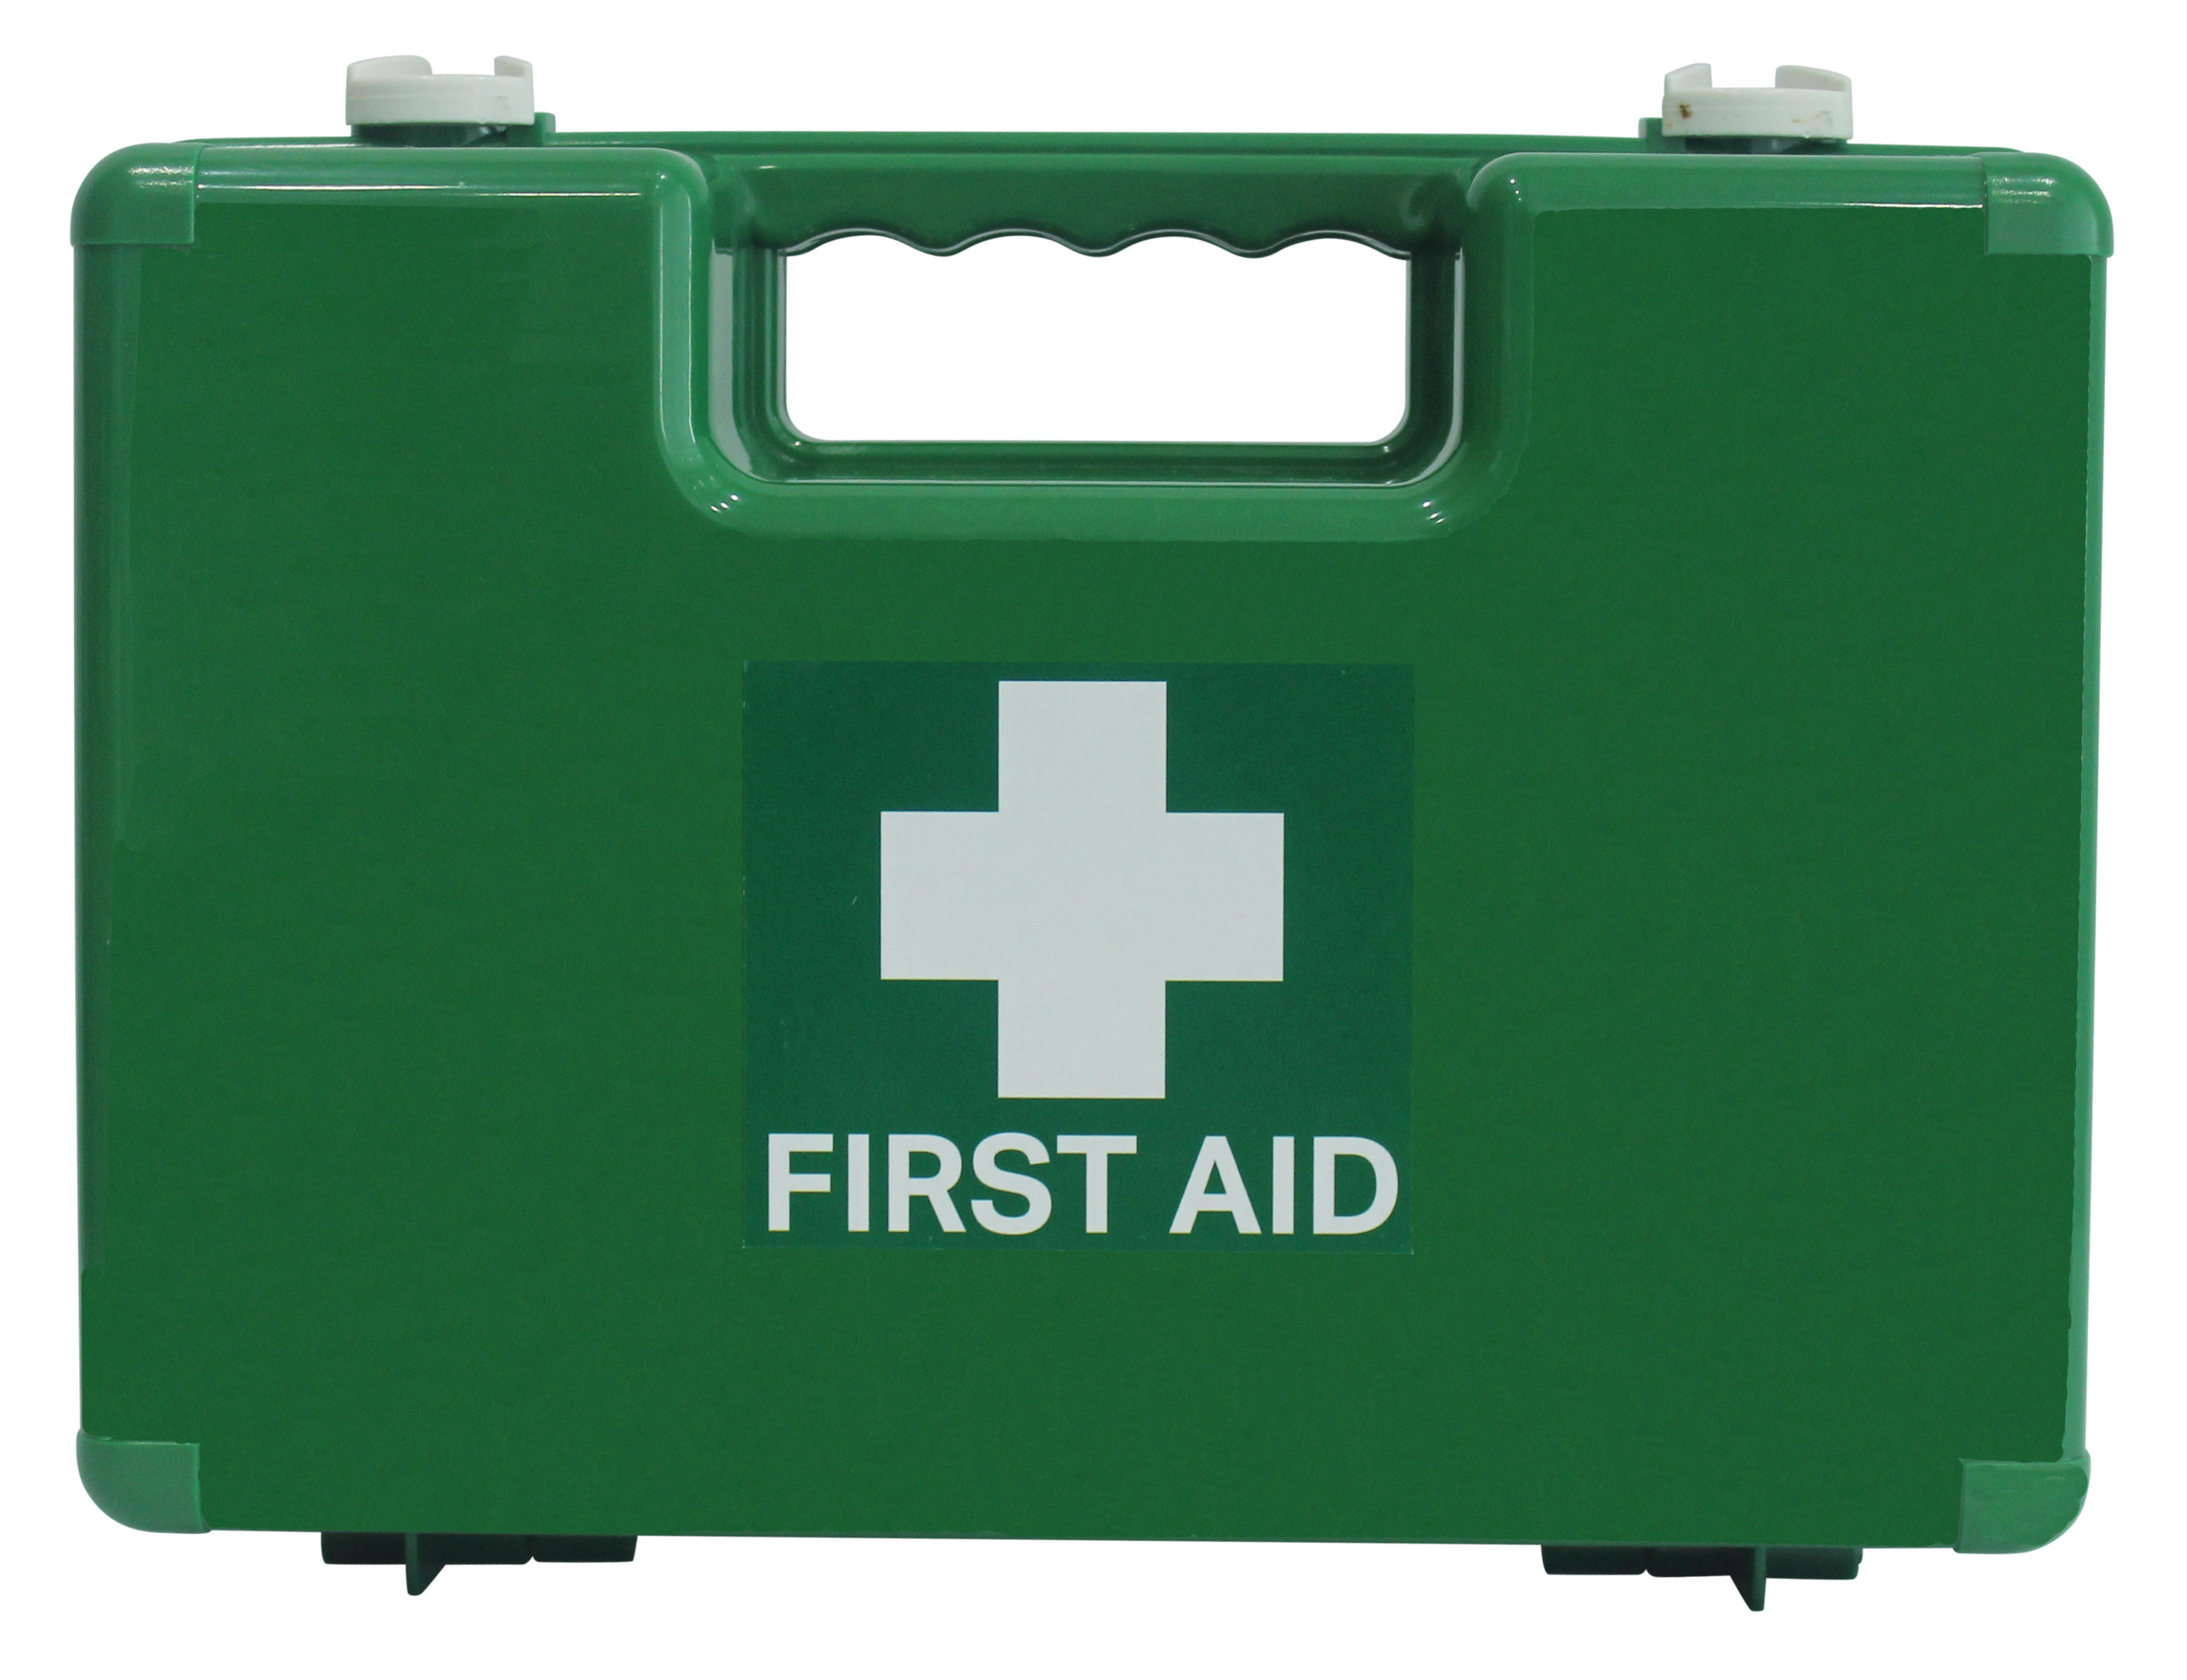 Northrock Safety First Aid Box Singapore First Aid Box